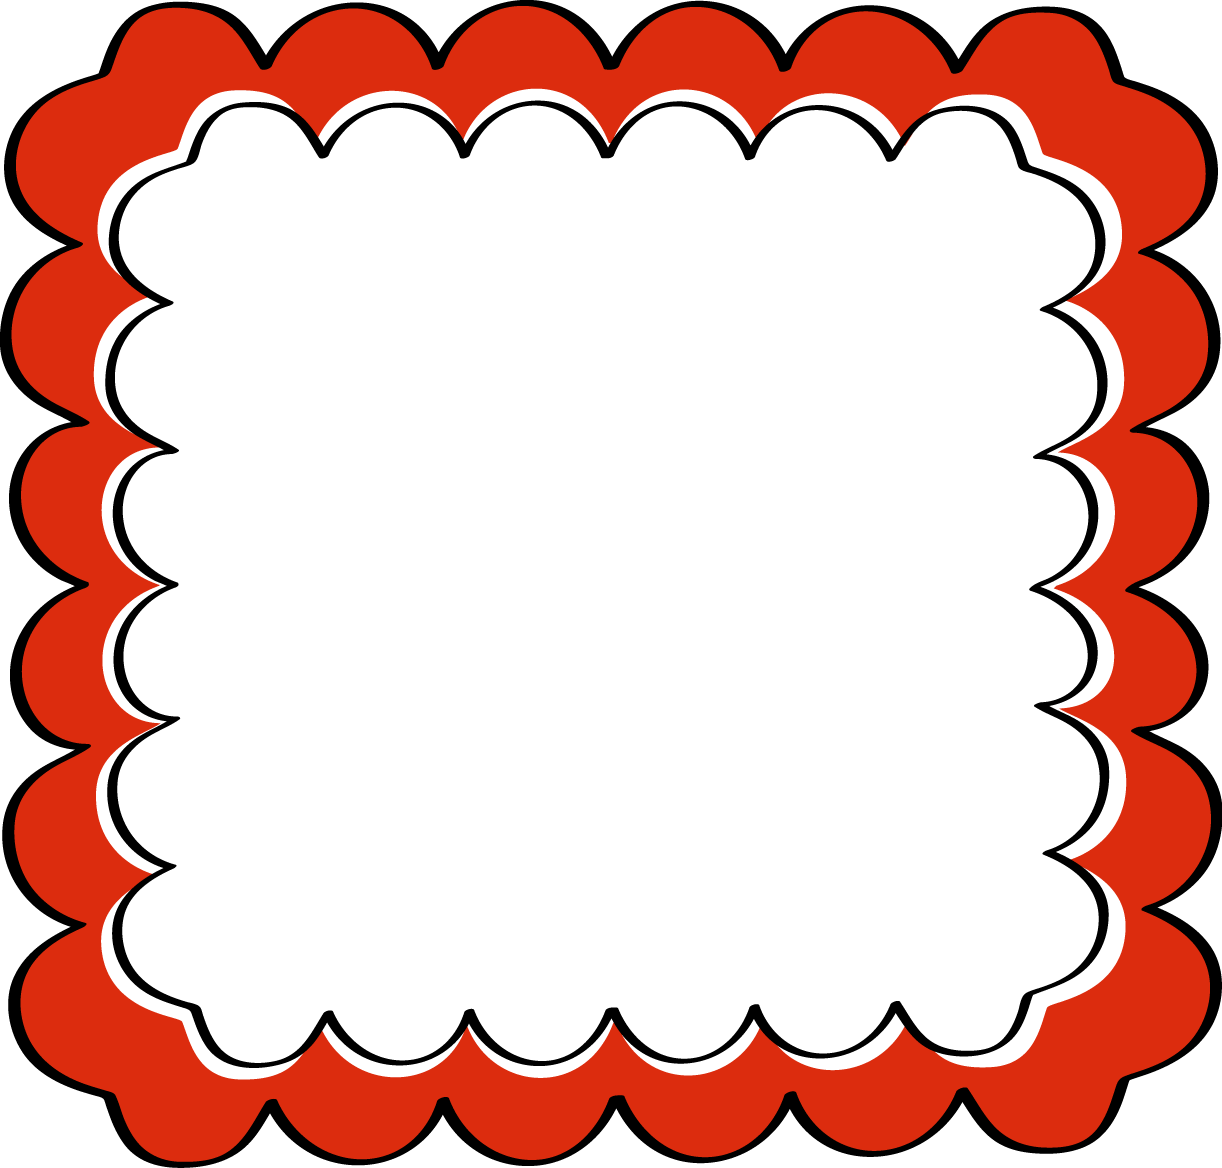 Red photo frame clipart graphic library download Scrapbook Frames and Borders | Red Scalloped Frame - Free ... graphic library download